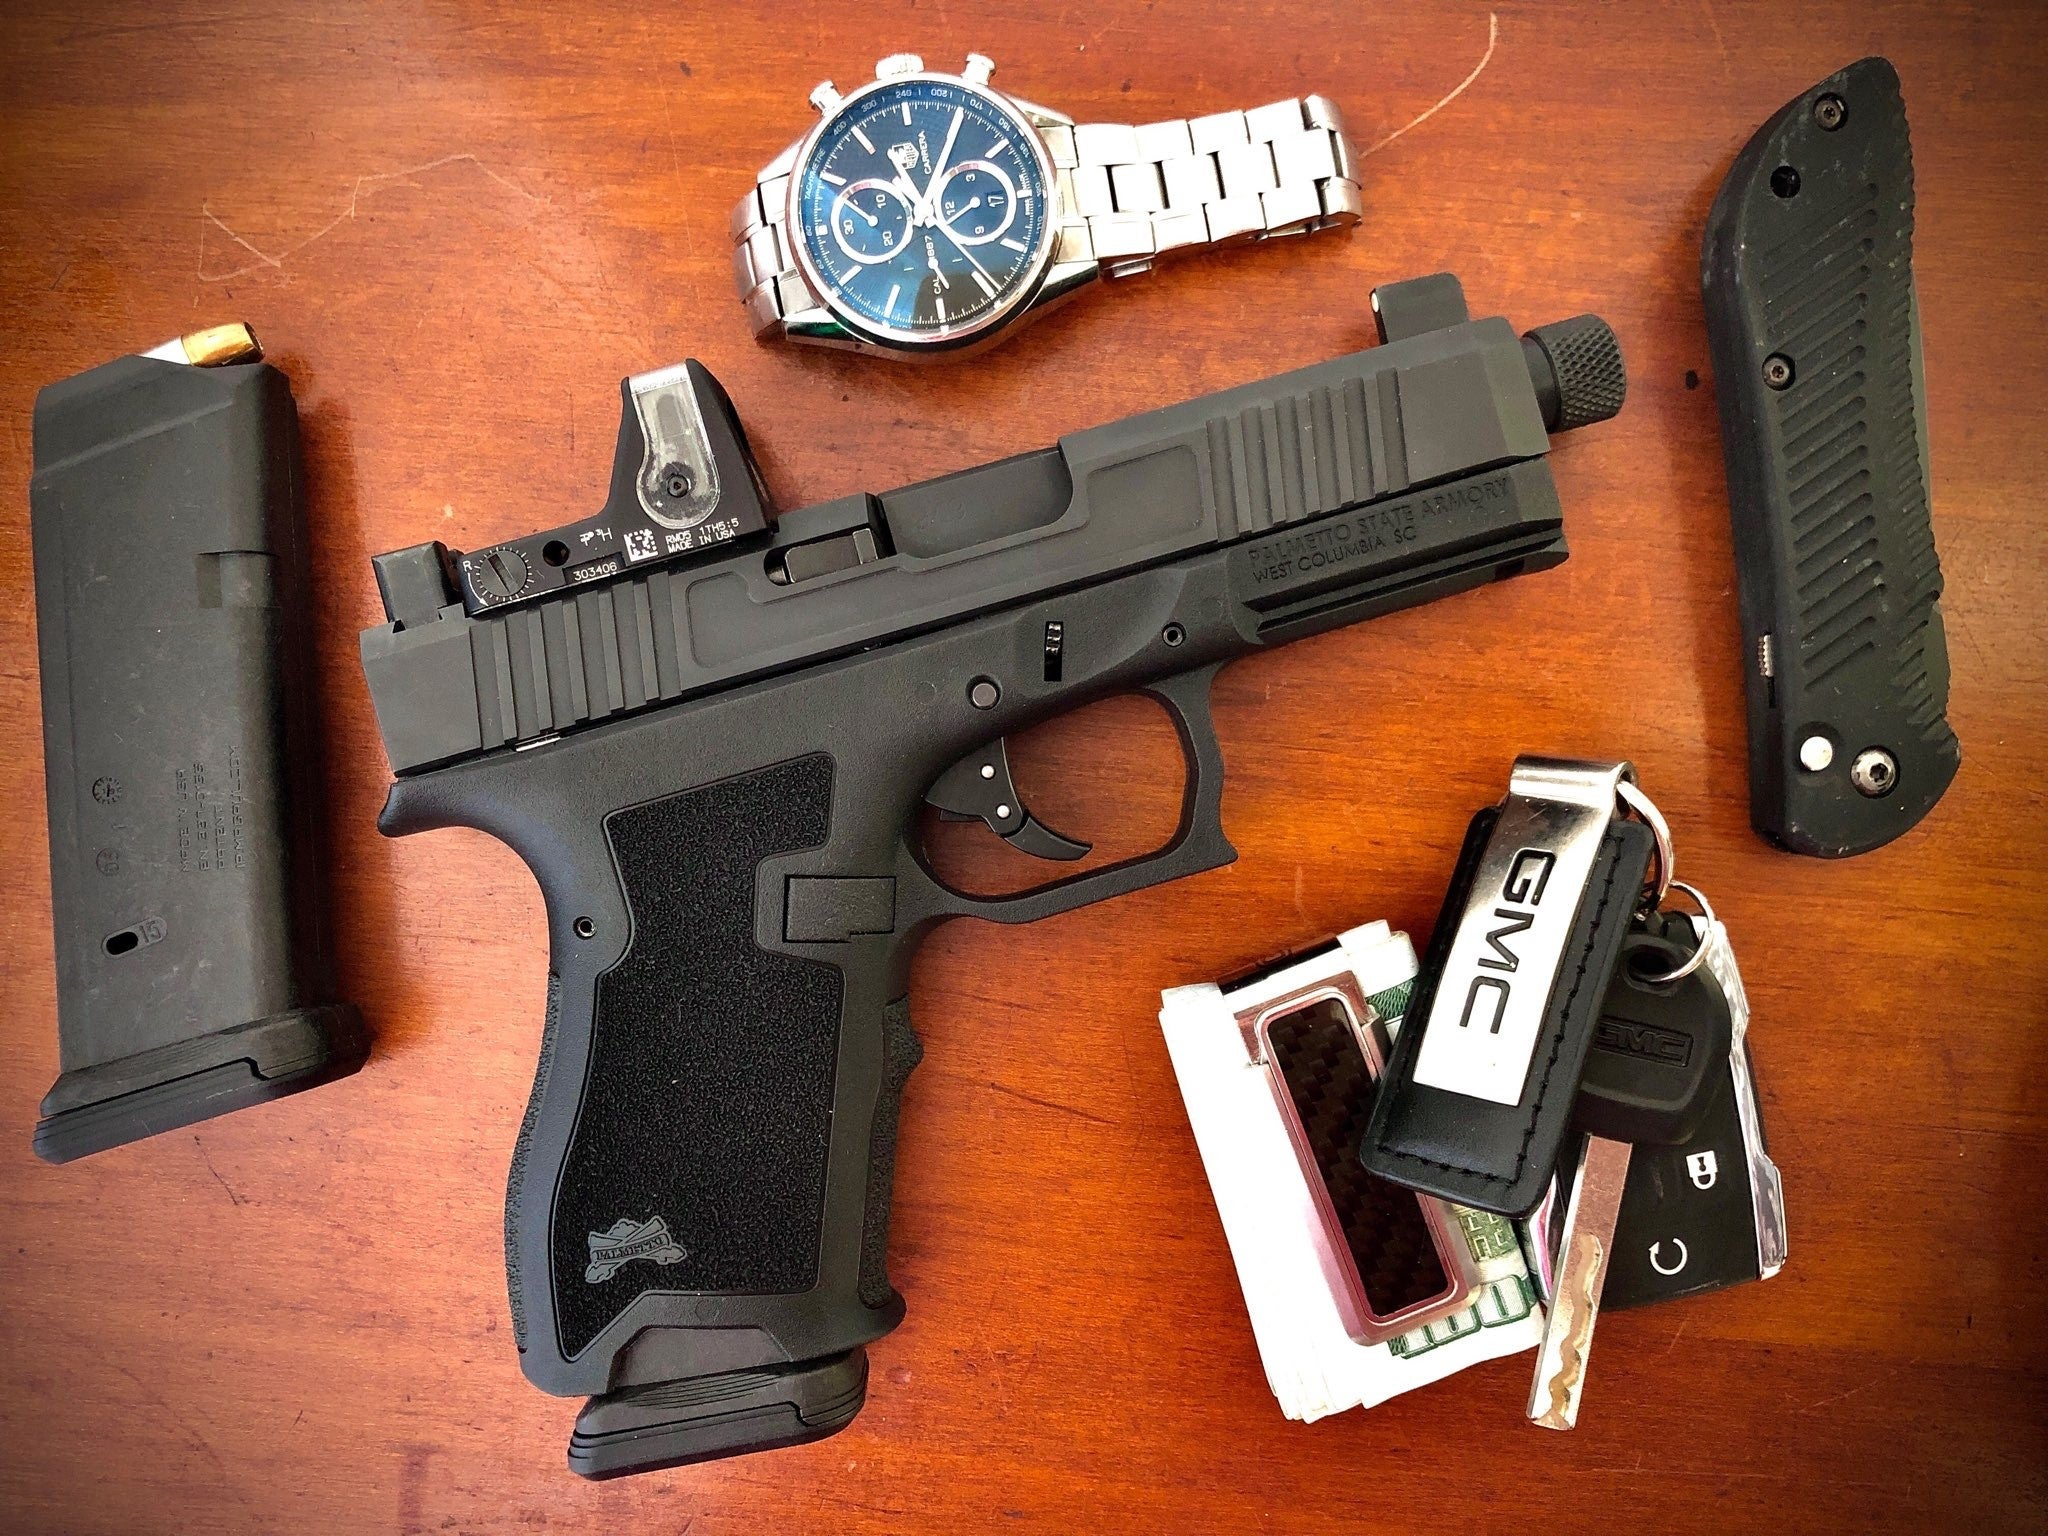 Handgun on table with keys watch and knife.